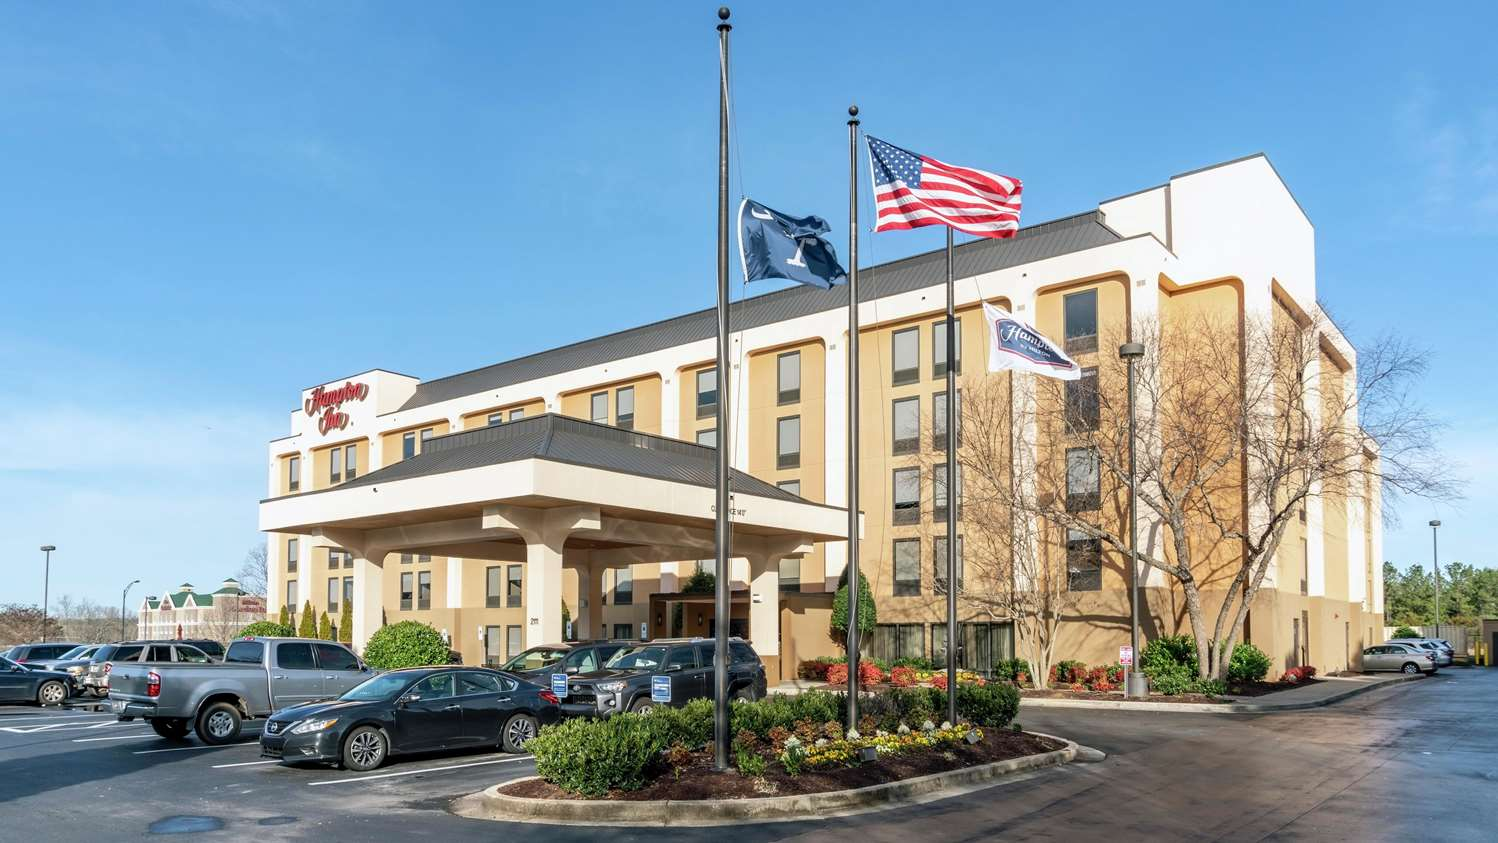 Rock hill hotels find hotels in rock hill sc with reviews maps and discounts for Hilton garden inn rock hill sc